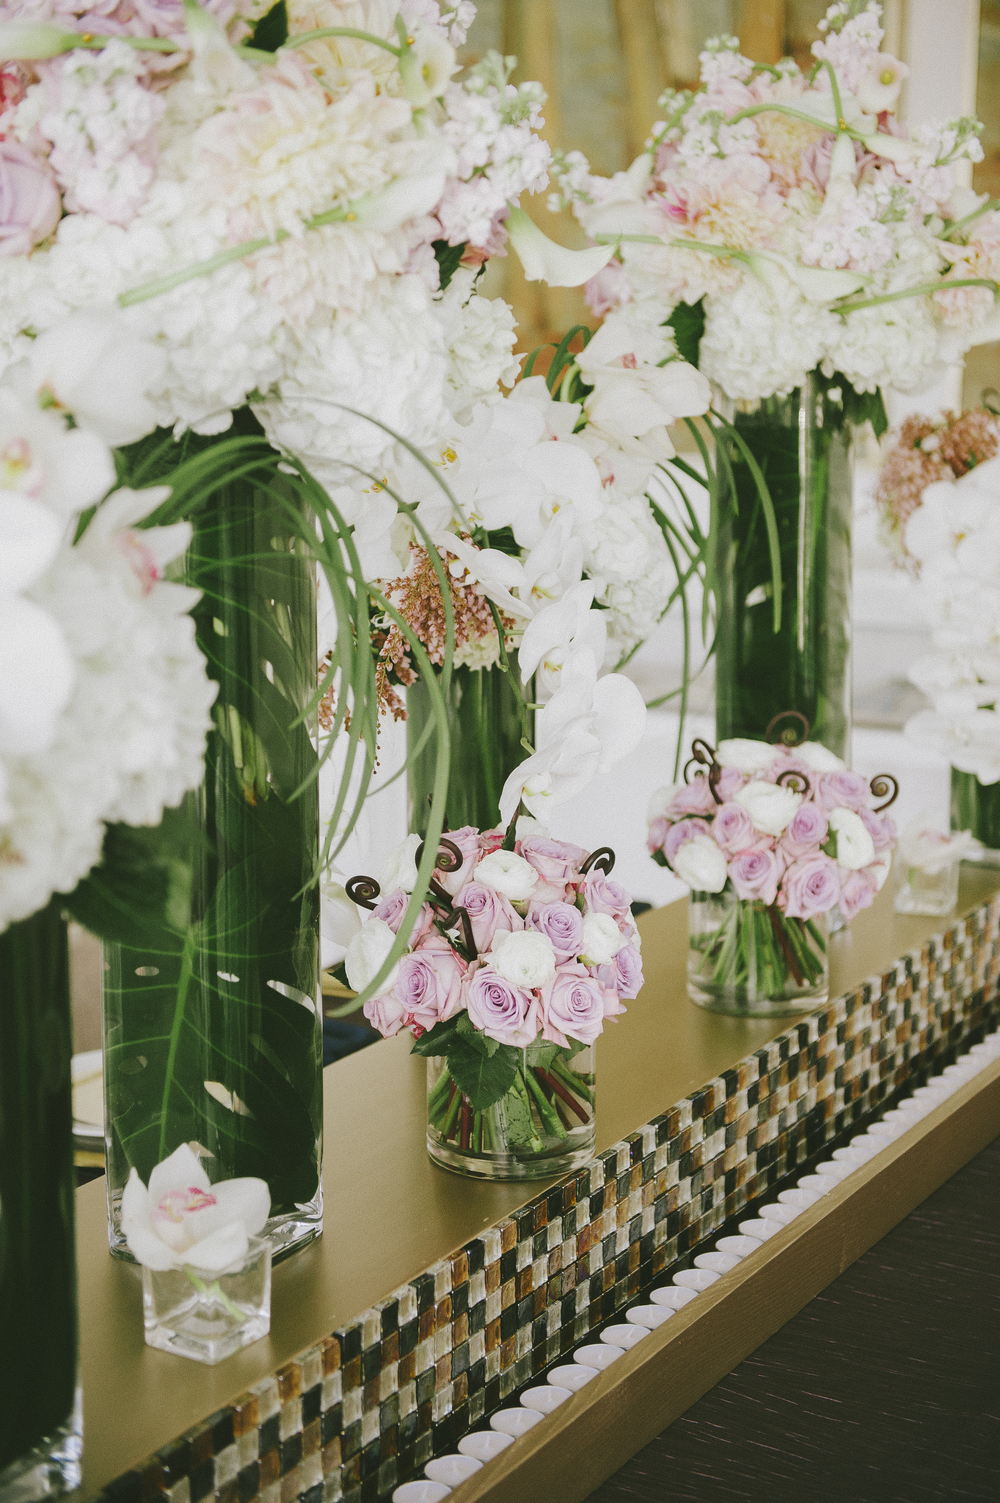 Jessica White Photography | Michelle Leo Events | Artistic Wedding Inspiration | Utah Wedding Design and Planning